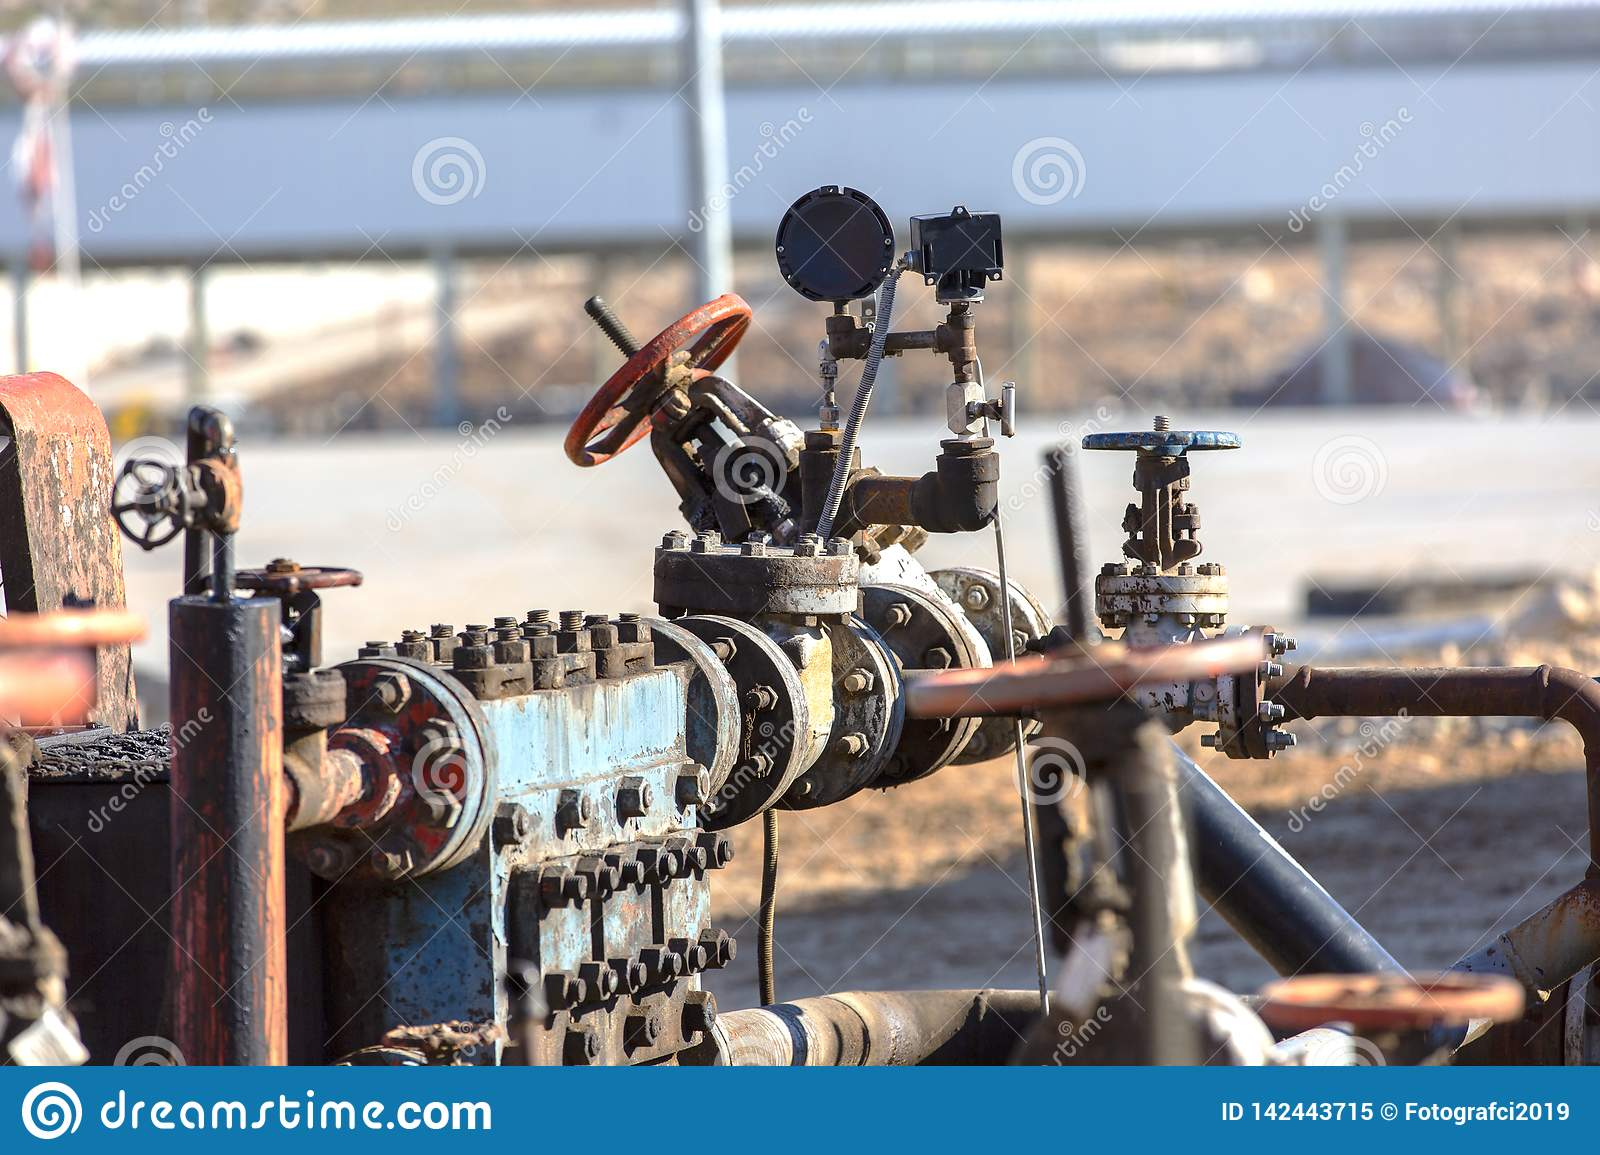 Different types of valves and indicators in the oil industry